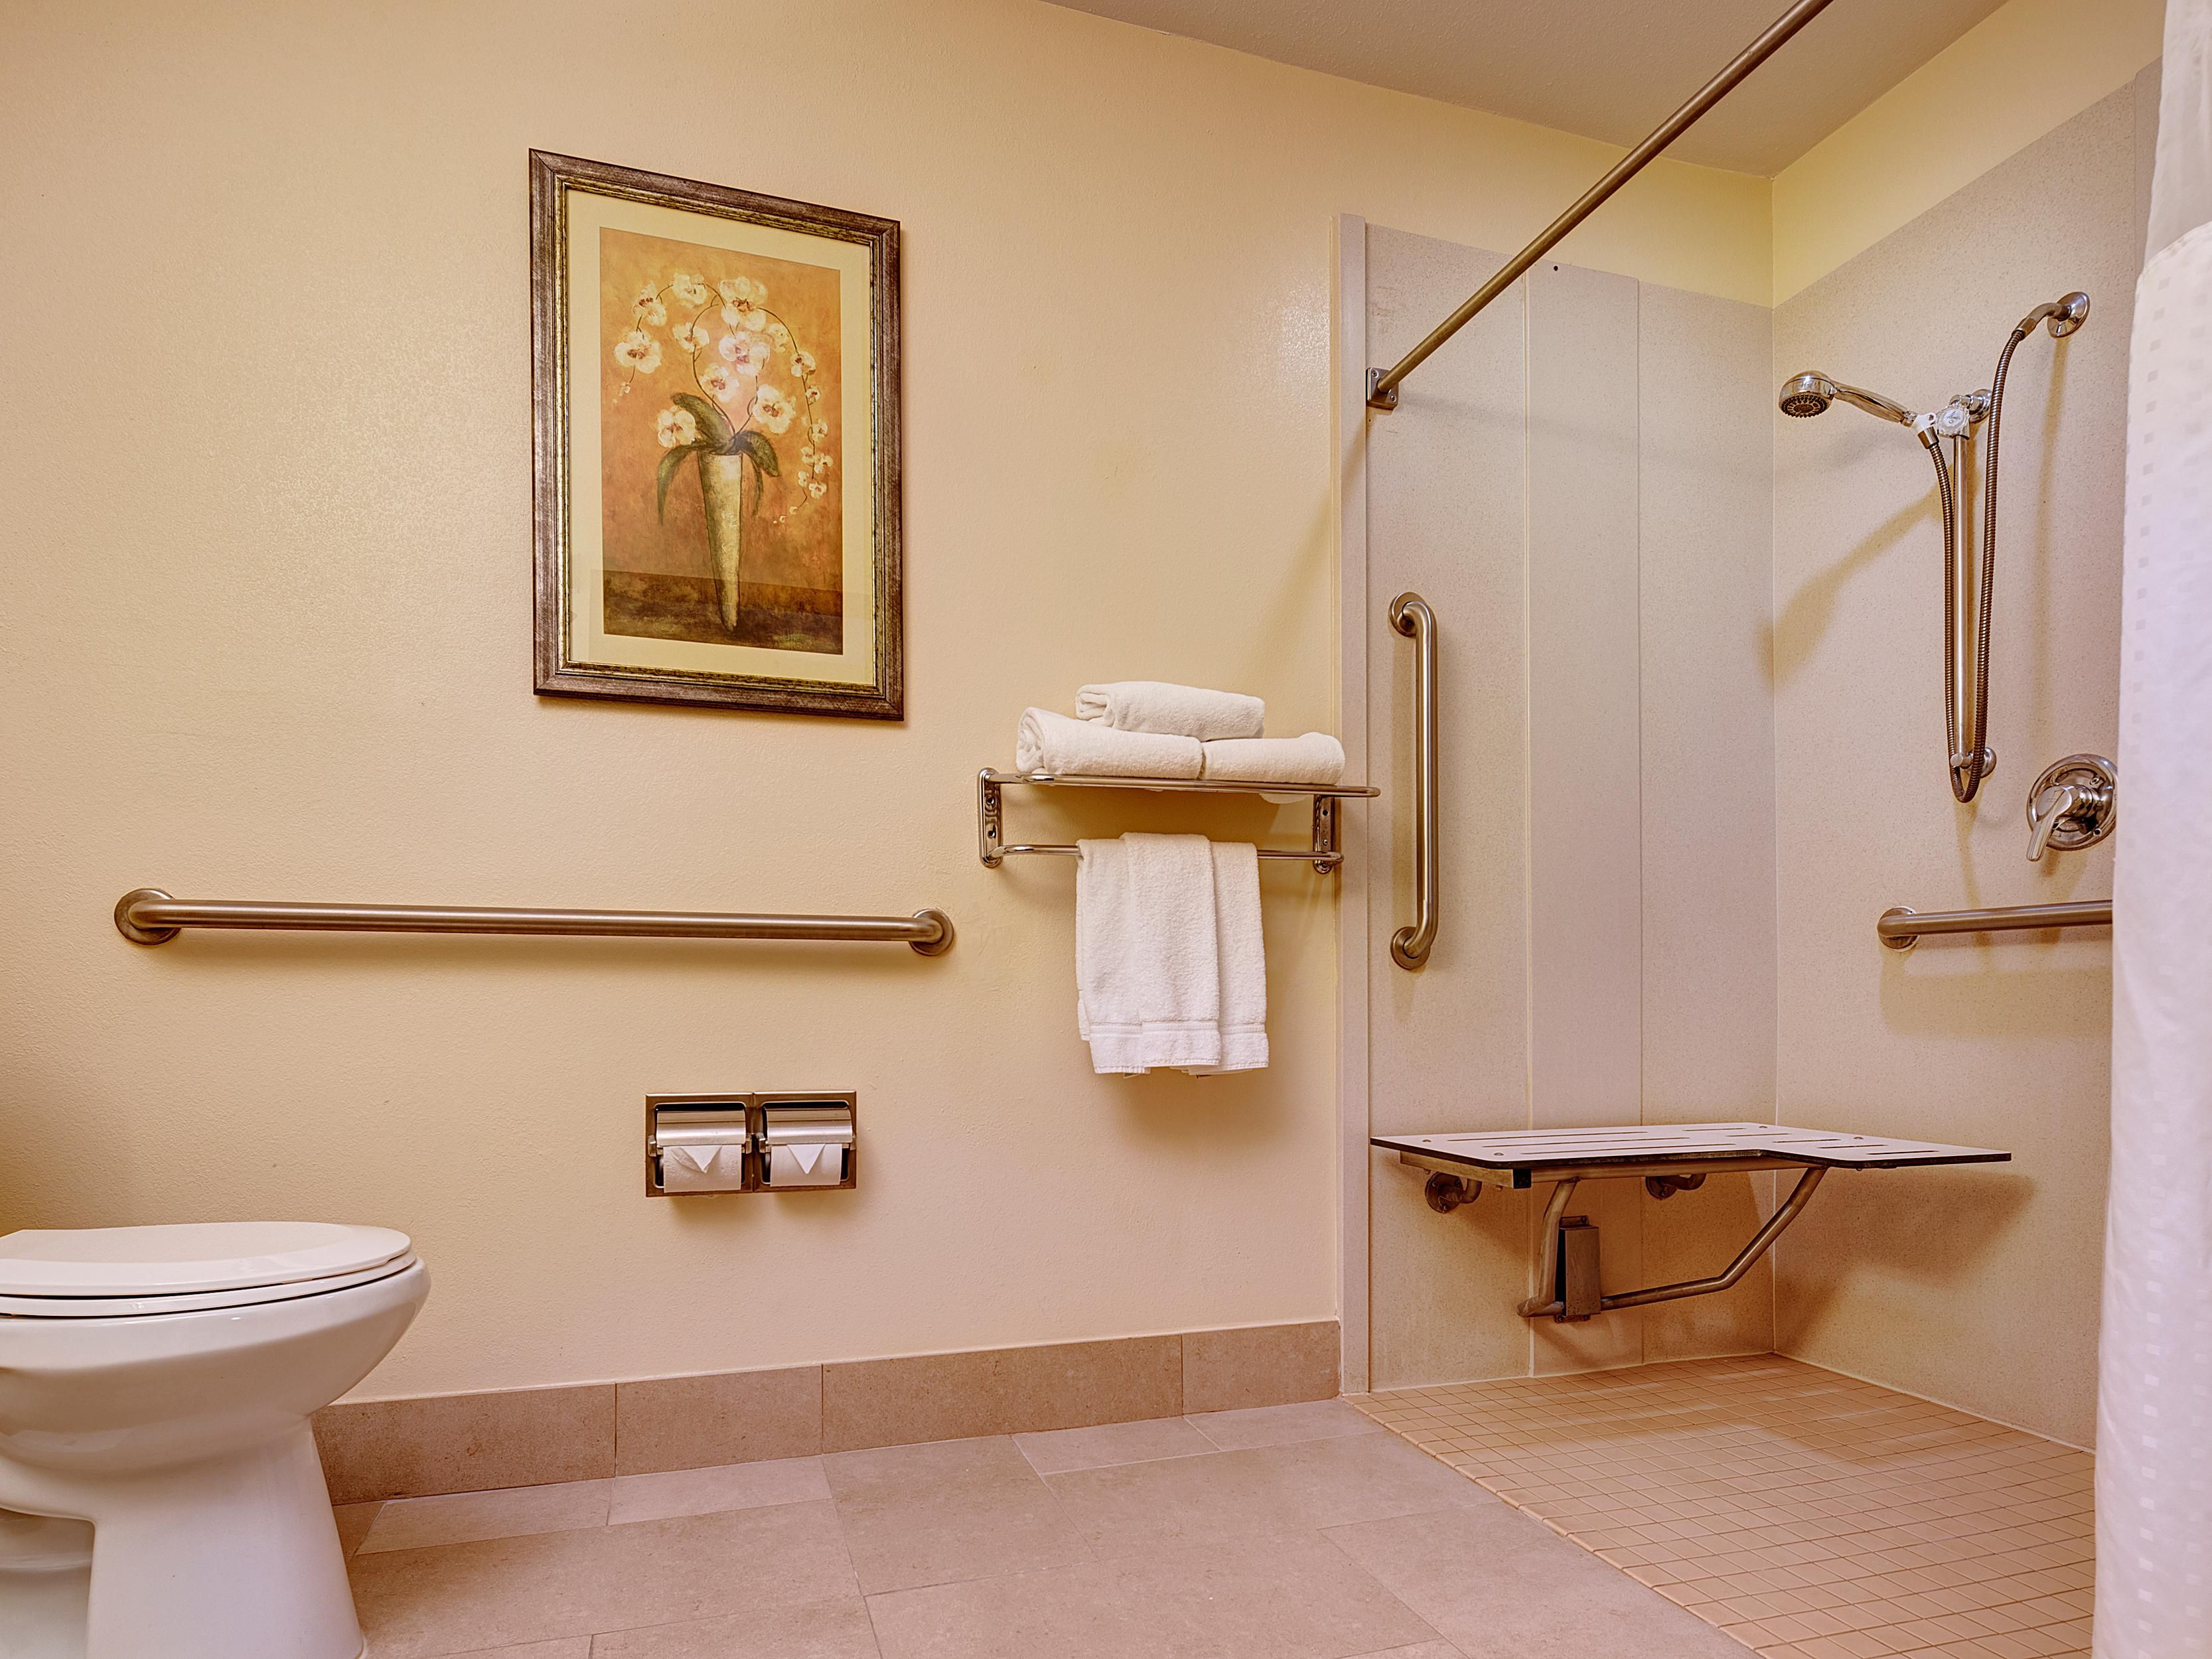 Accessible guest rooms are available upon request.